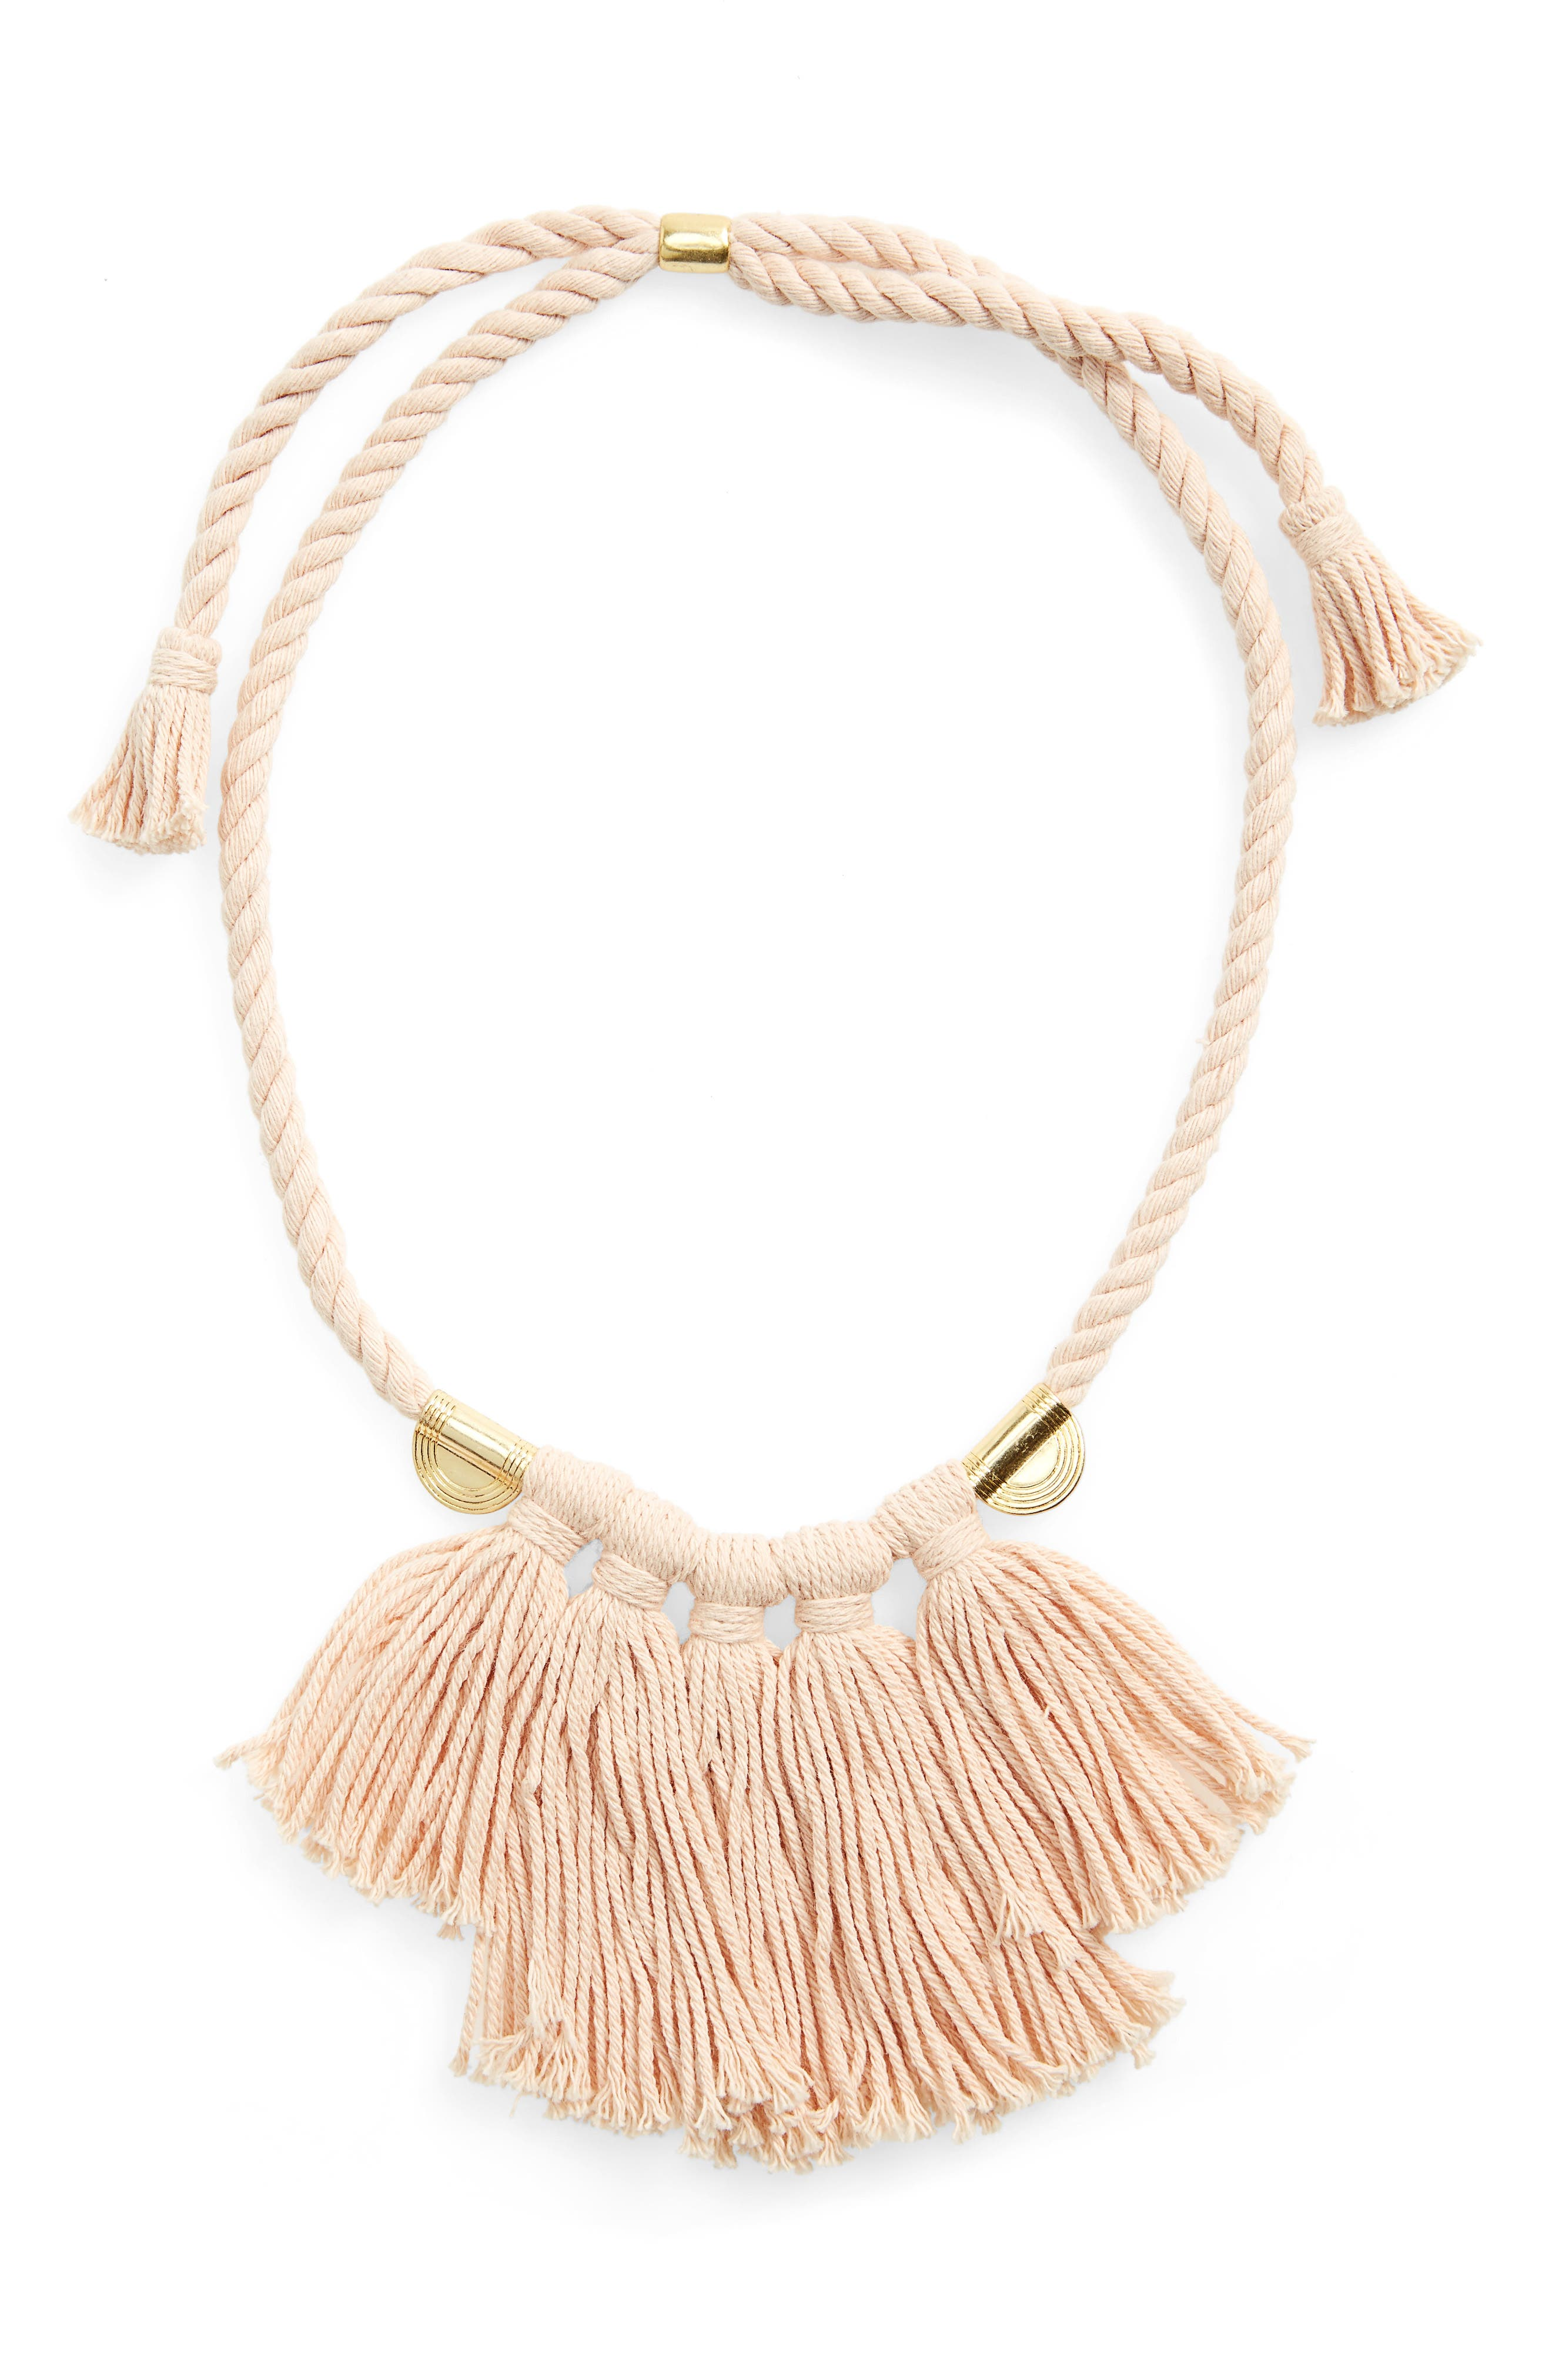 Alternate Image 1 Selected - Madewell Tassel Statement Necklace